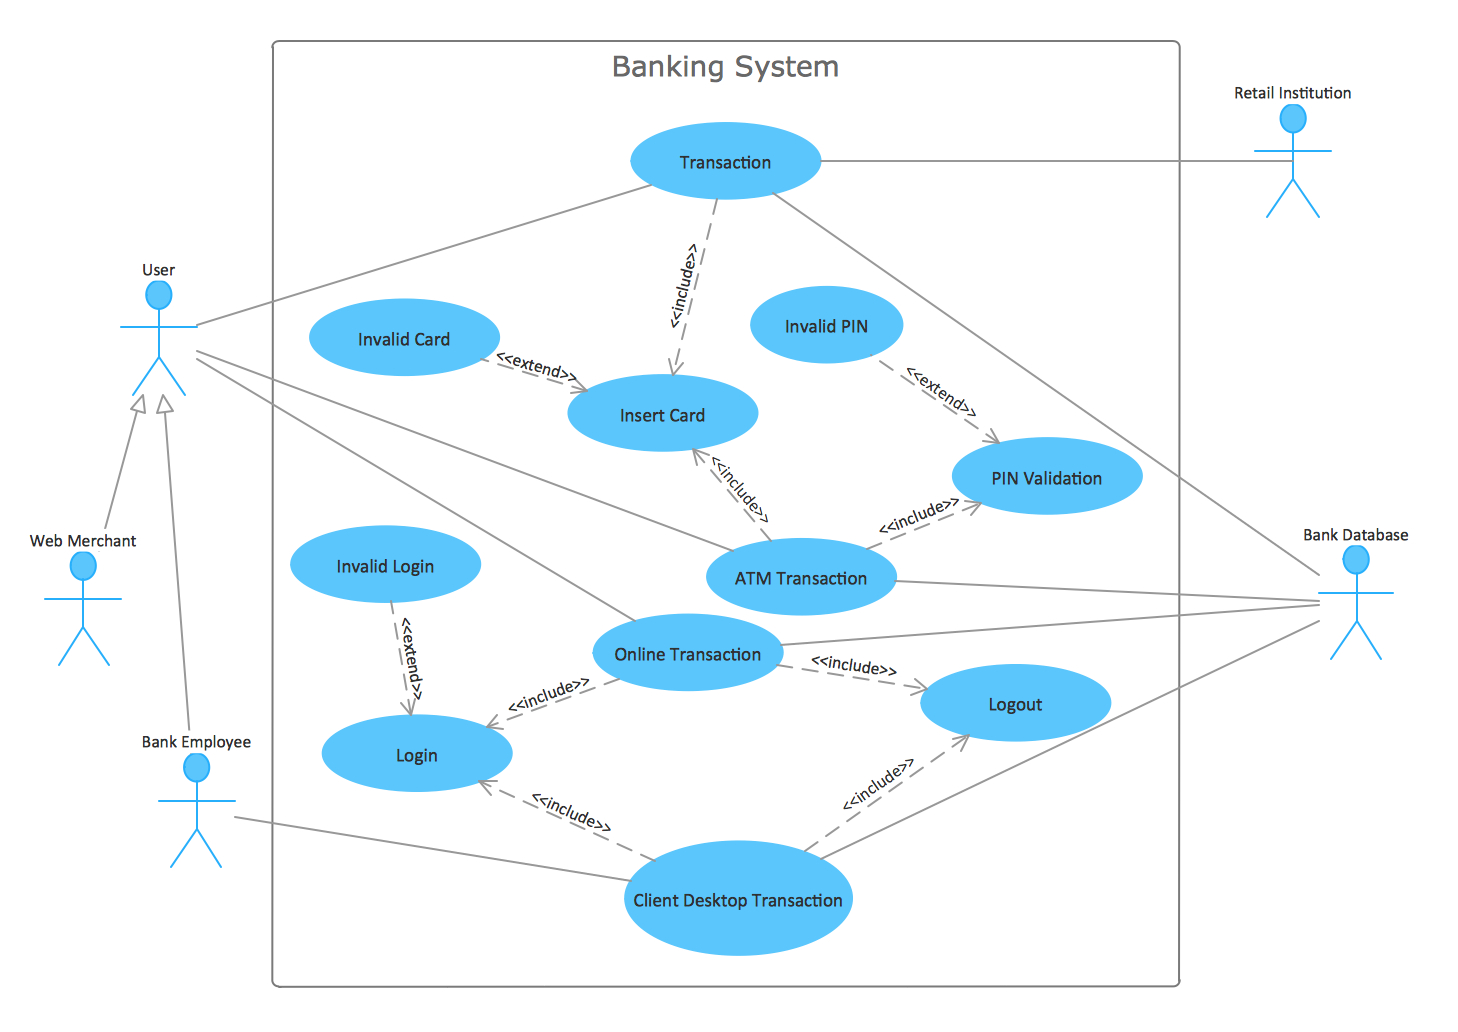 UML use case diagram - Banking system | UML Diagram | UML ...